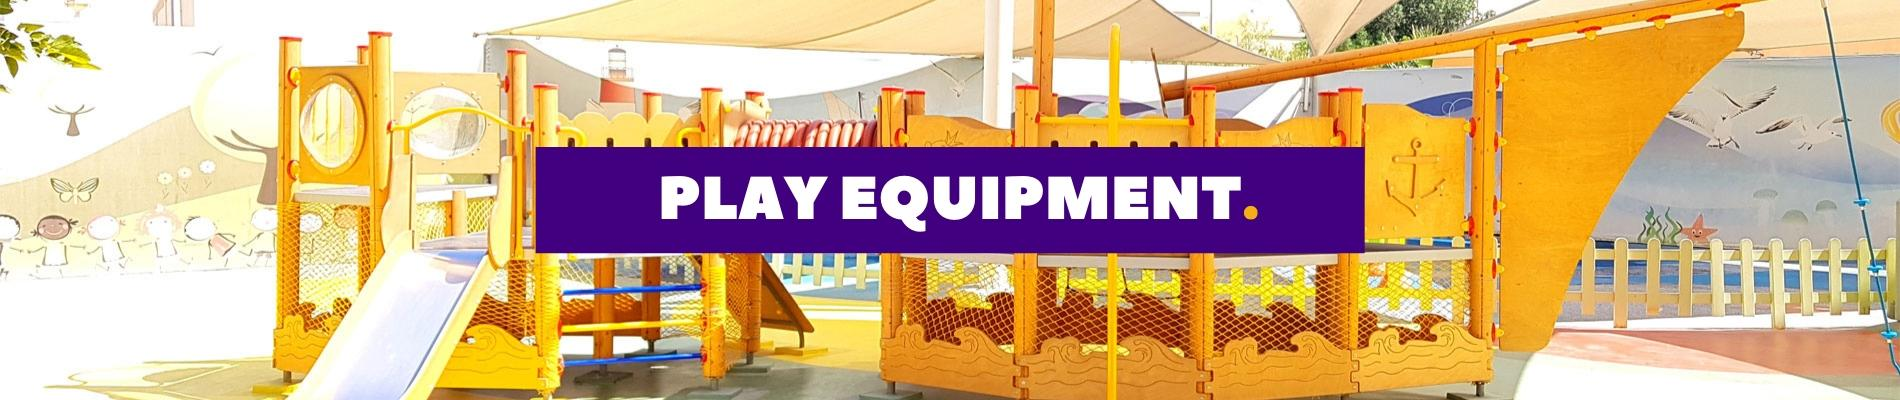 Moon Kids Category Play Equipment